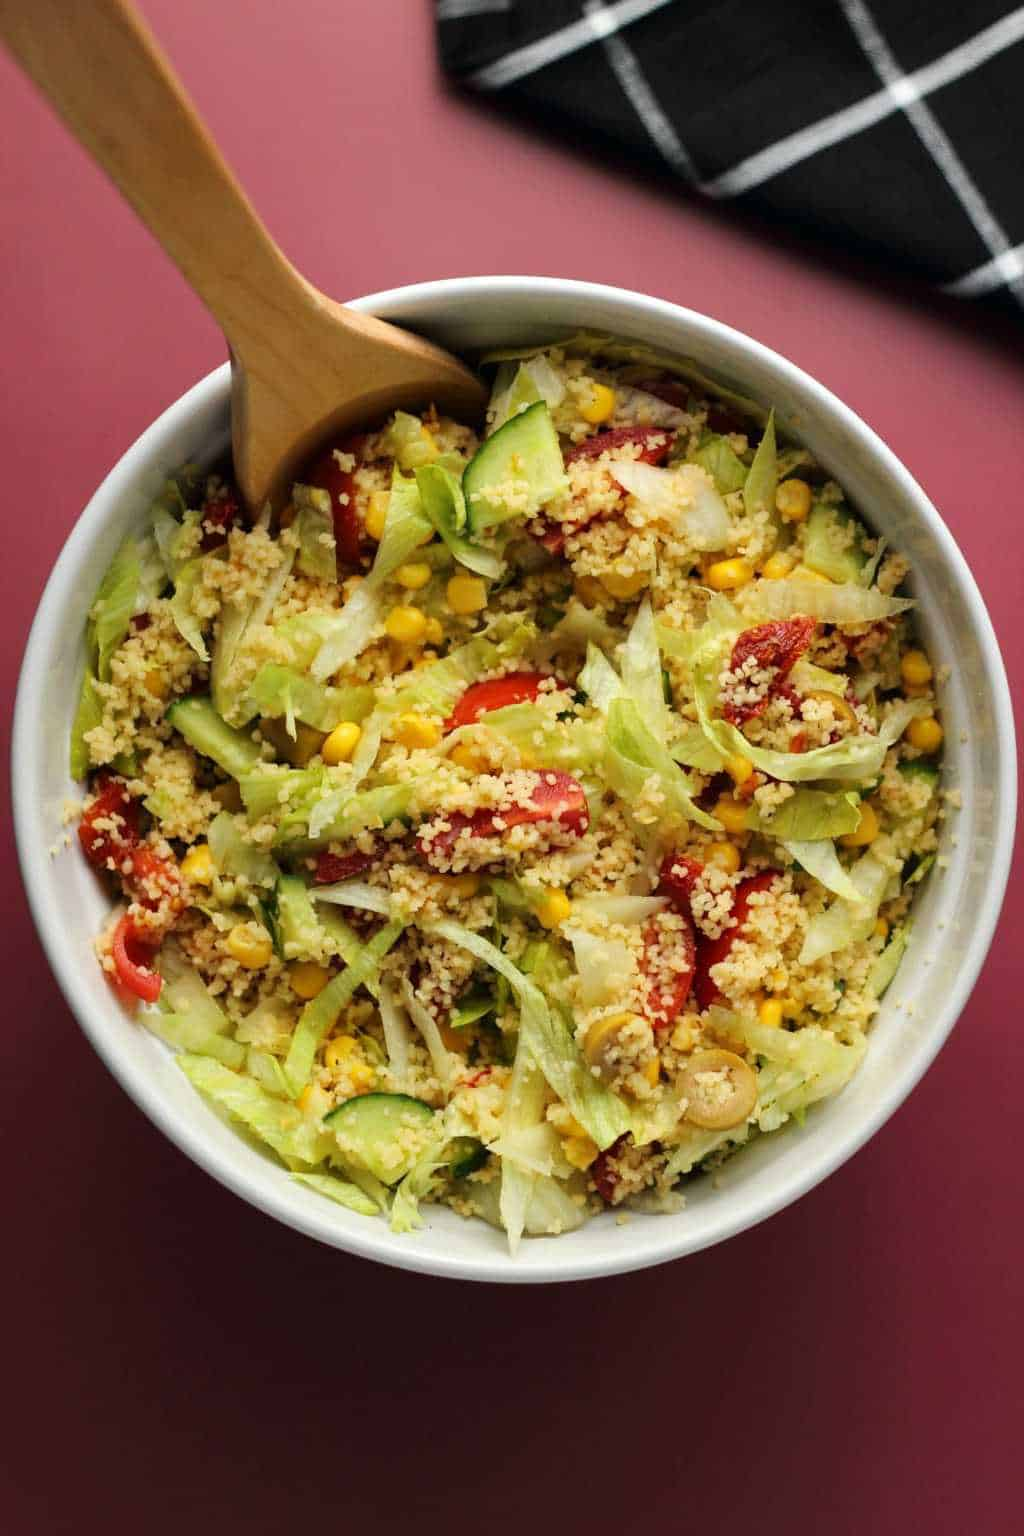 Vegan couscous salad in a white bowl with a wooden spoon.